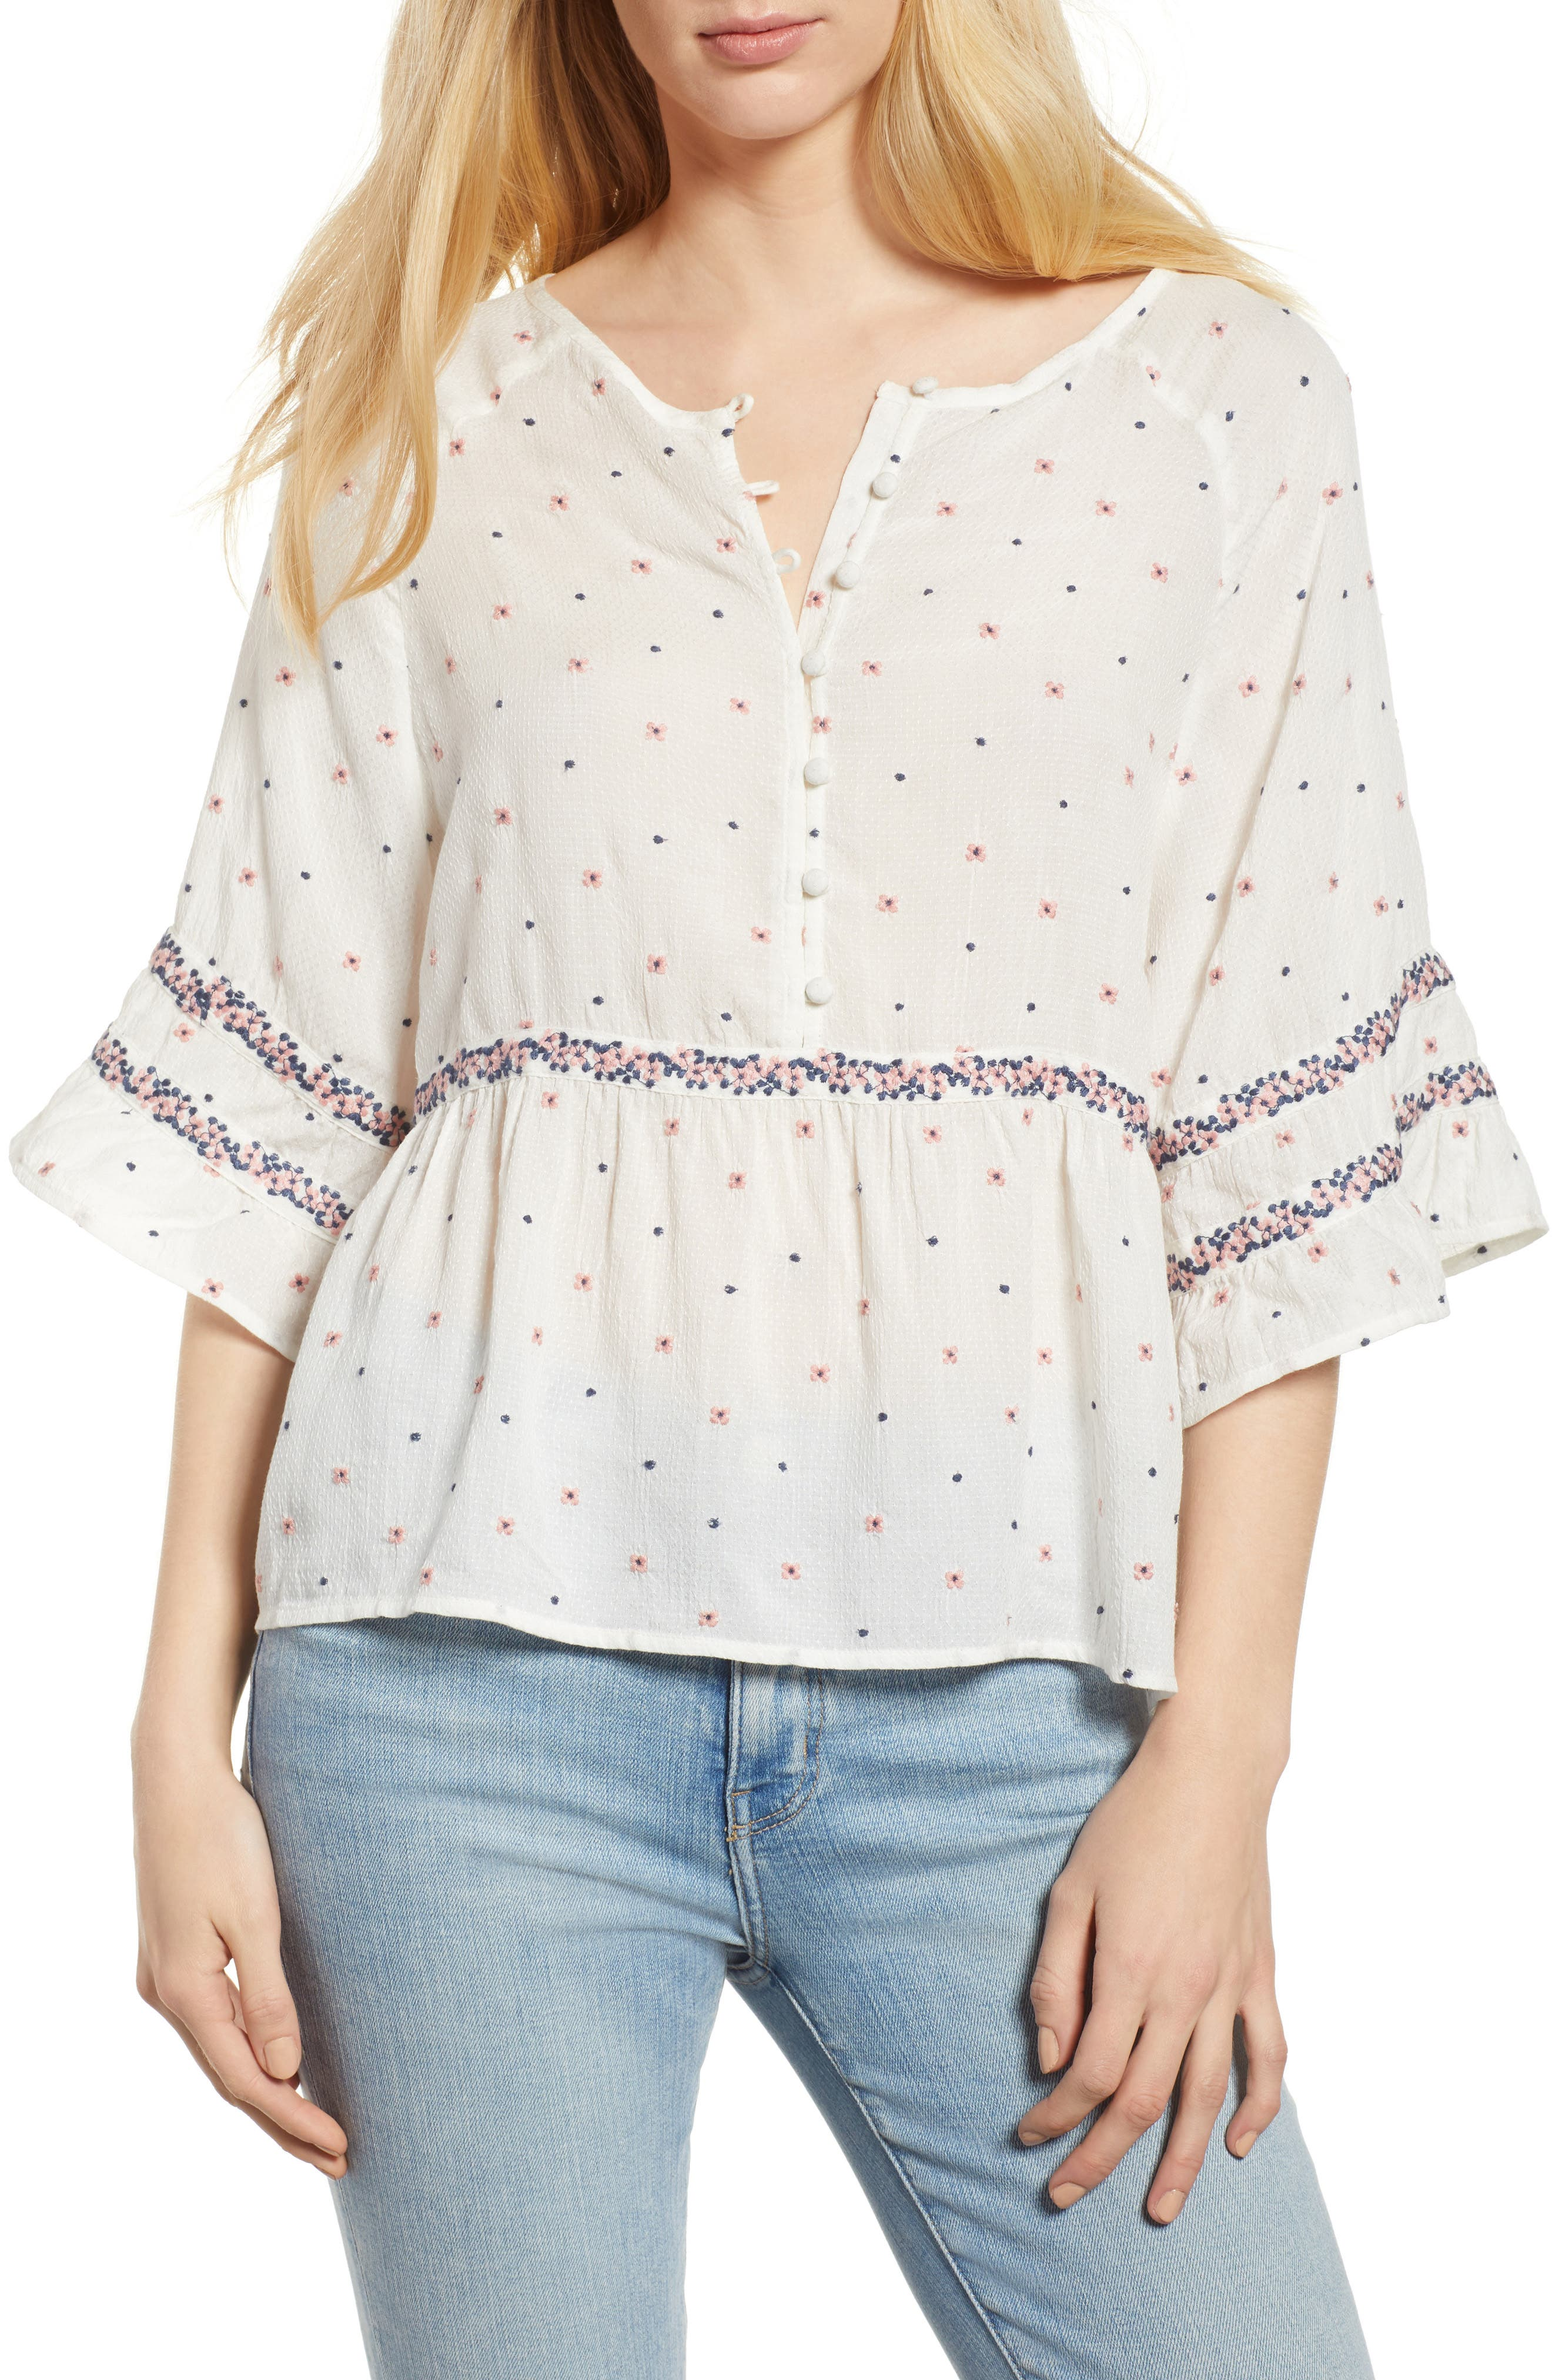 Velvet by Graham & Spence Embroidered Babydoll Blouse,                         Main,                         color, Multi